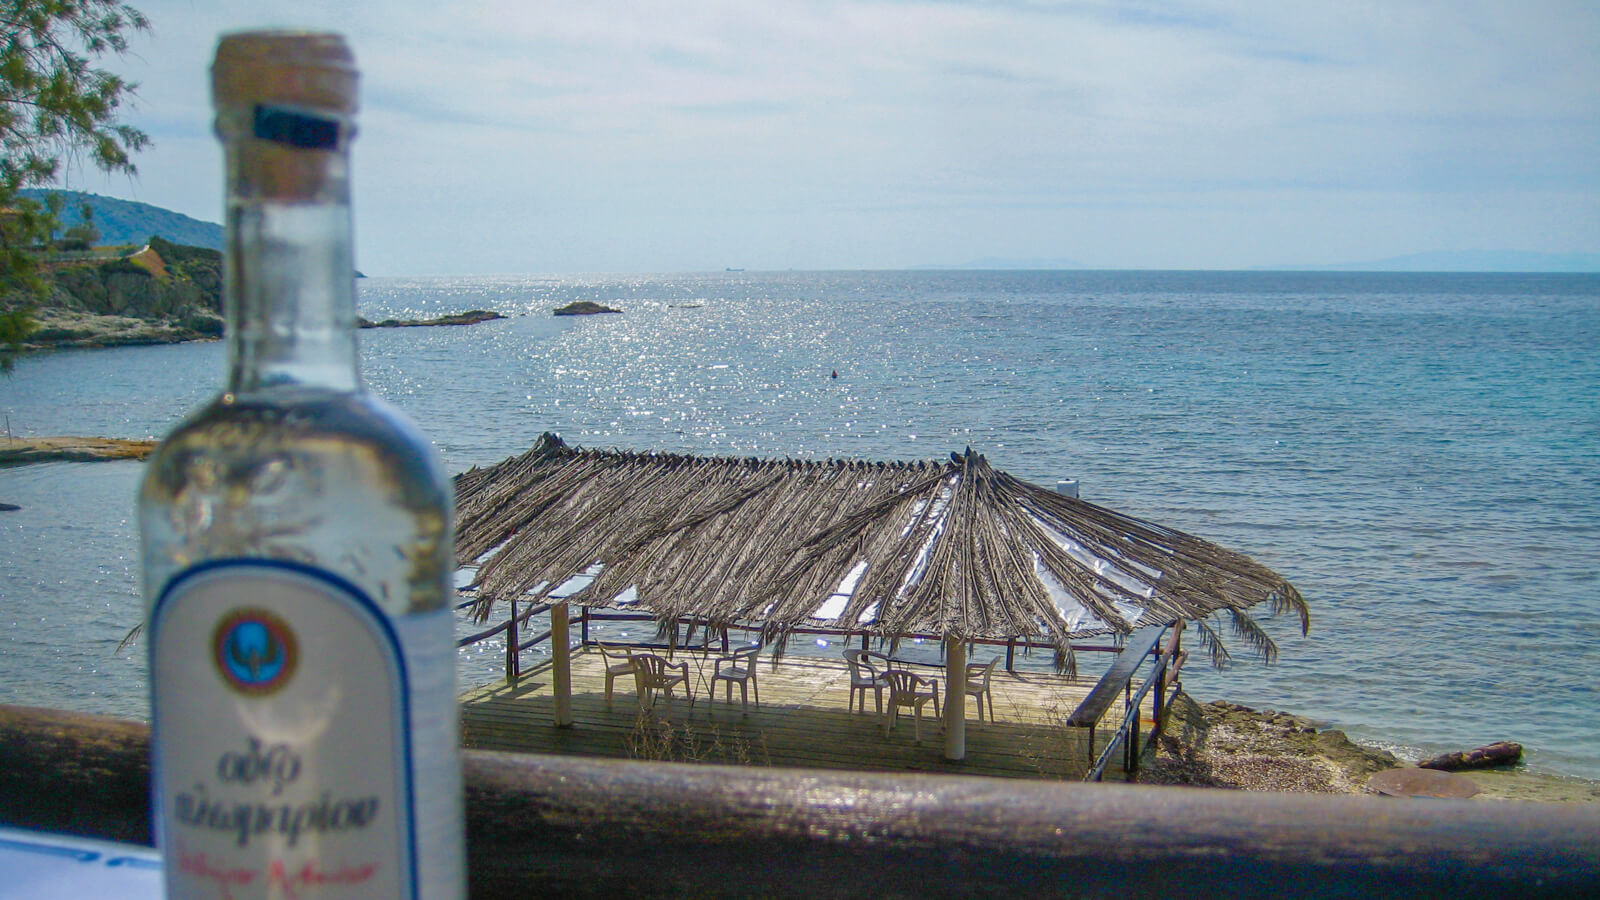 Drinking Ouzo and enjoying the view of the Greece coastline